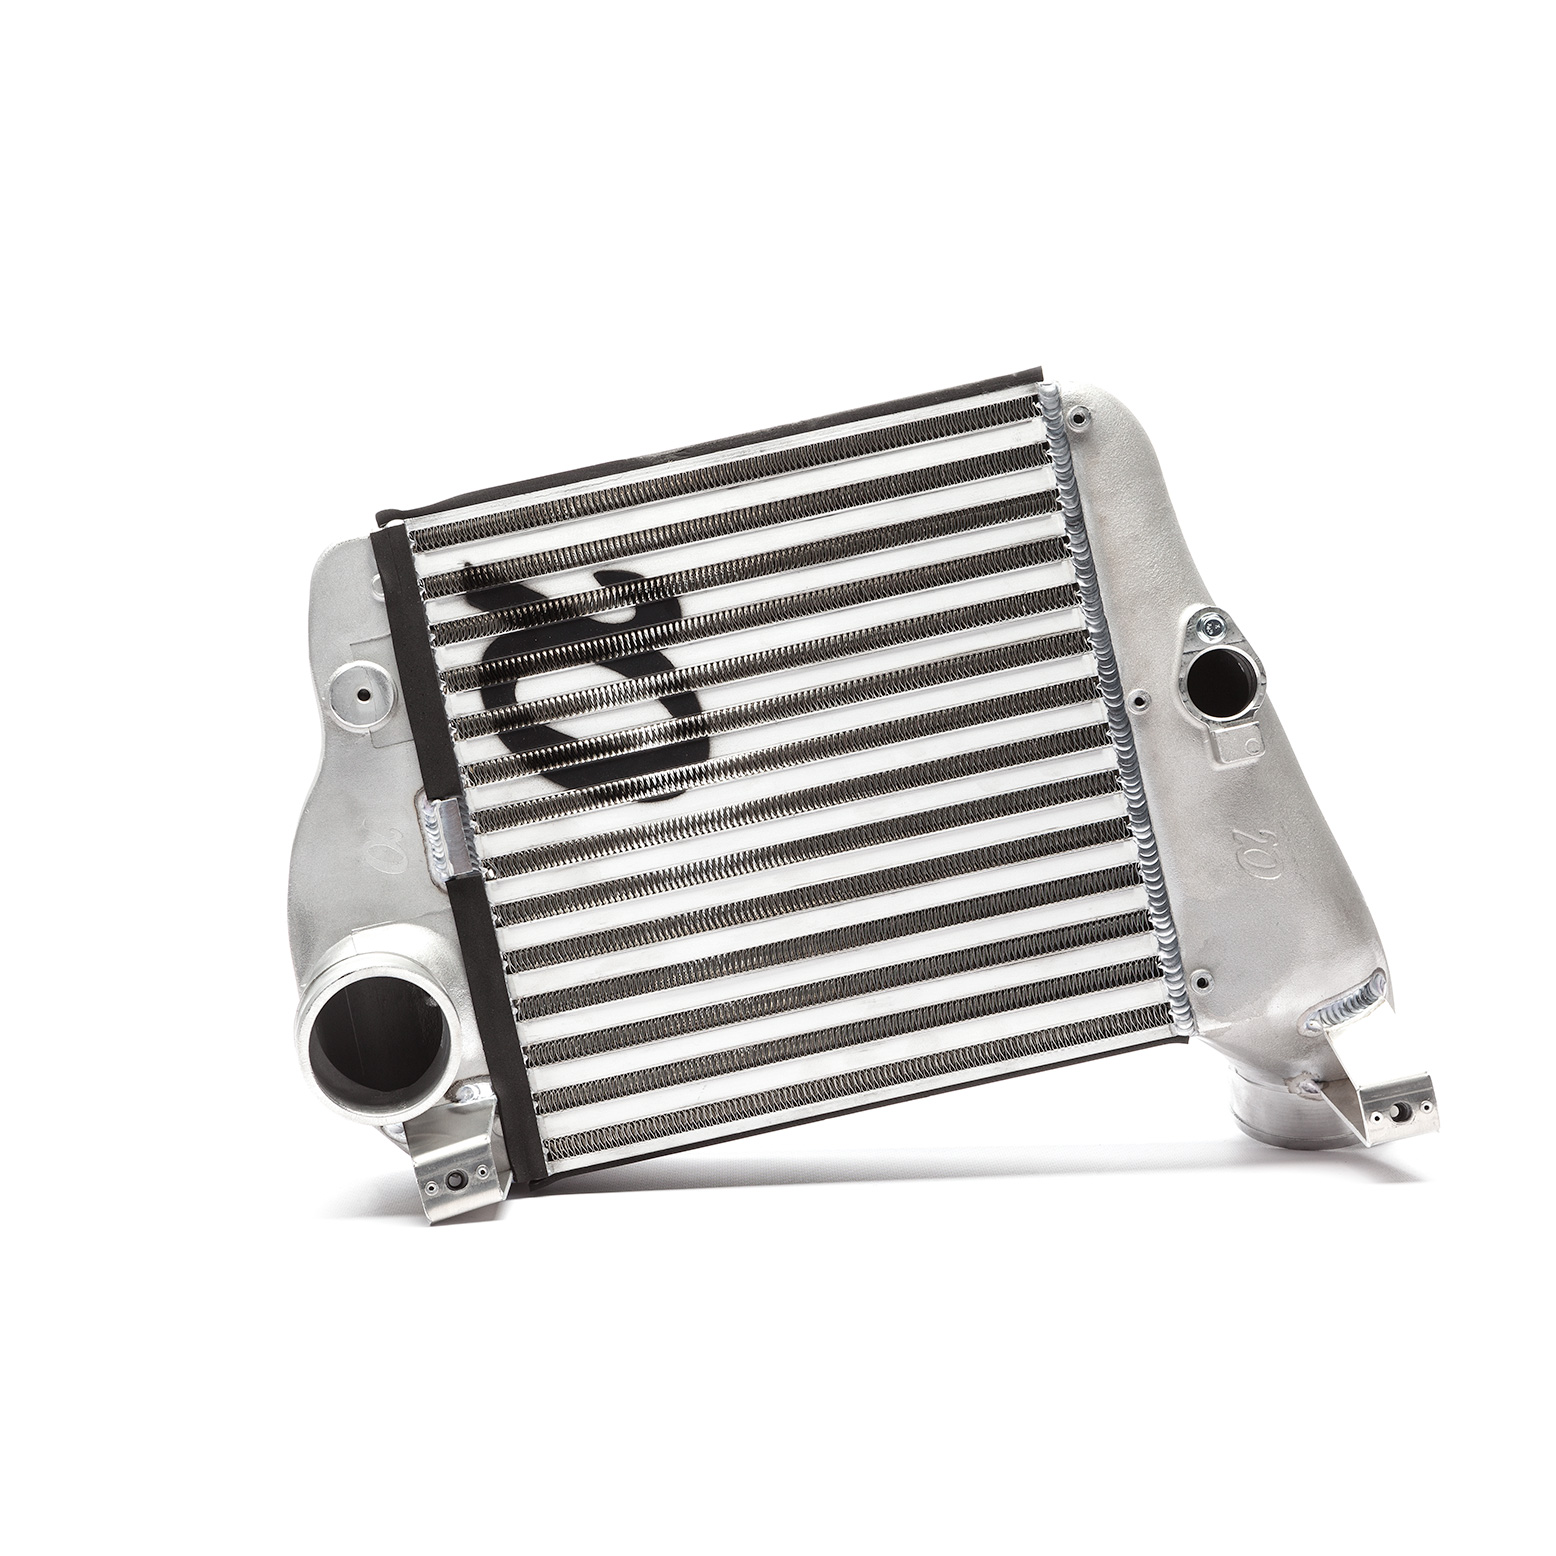 Alpha Performance Intercooler System for Porsche Macan S / GTS / Turbo 2015-2018